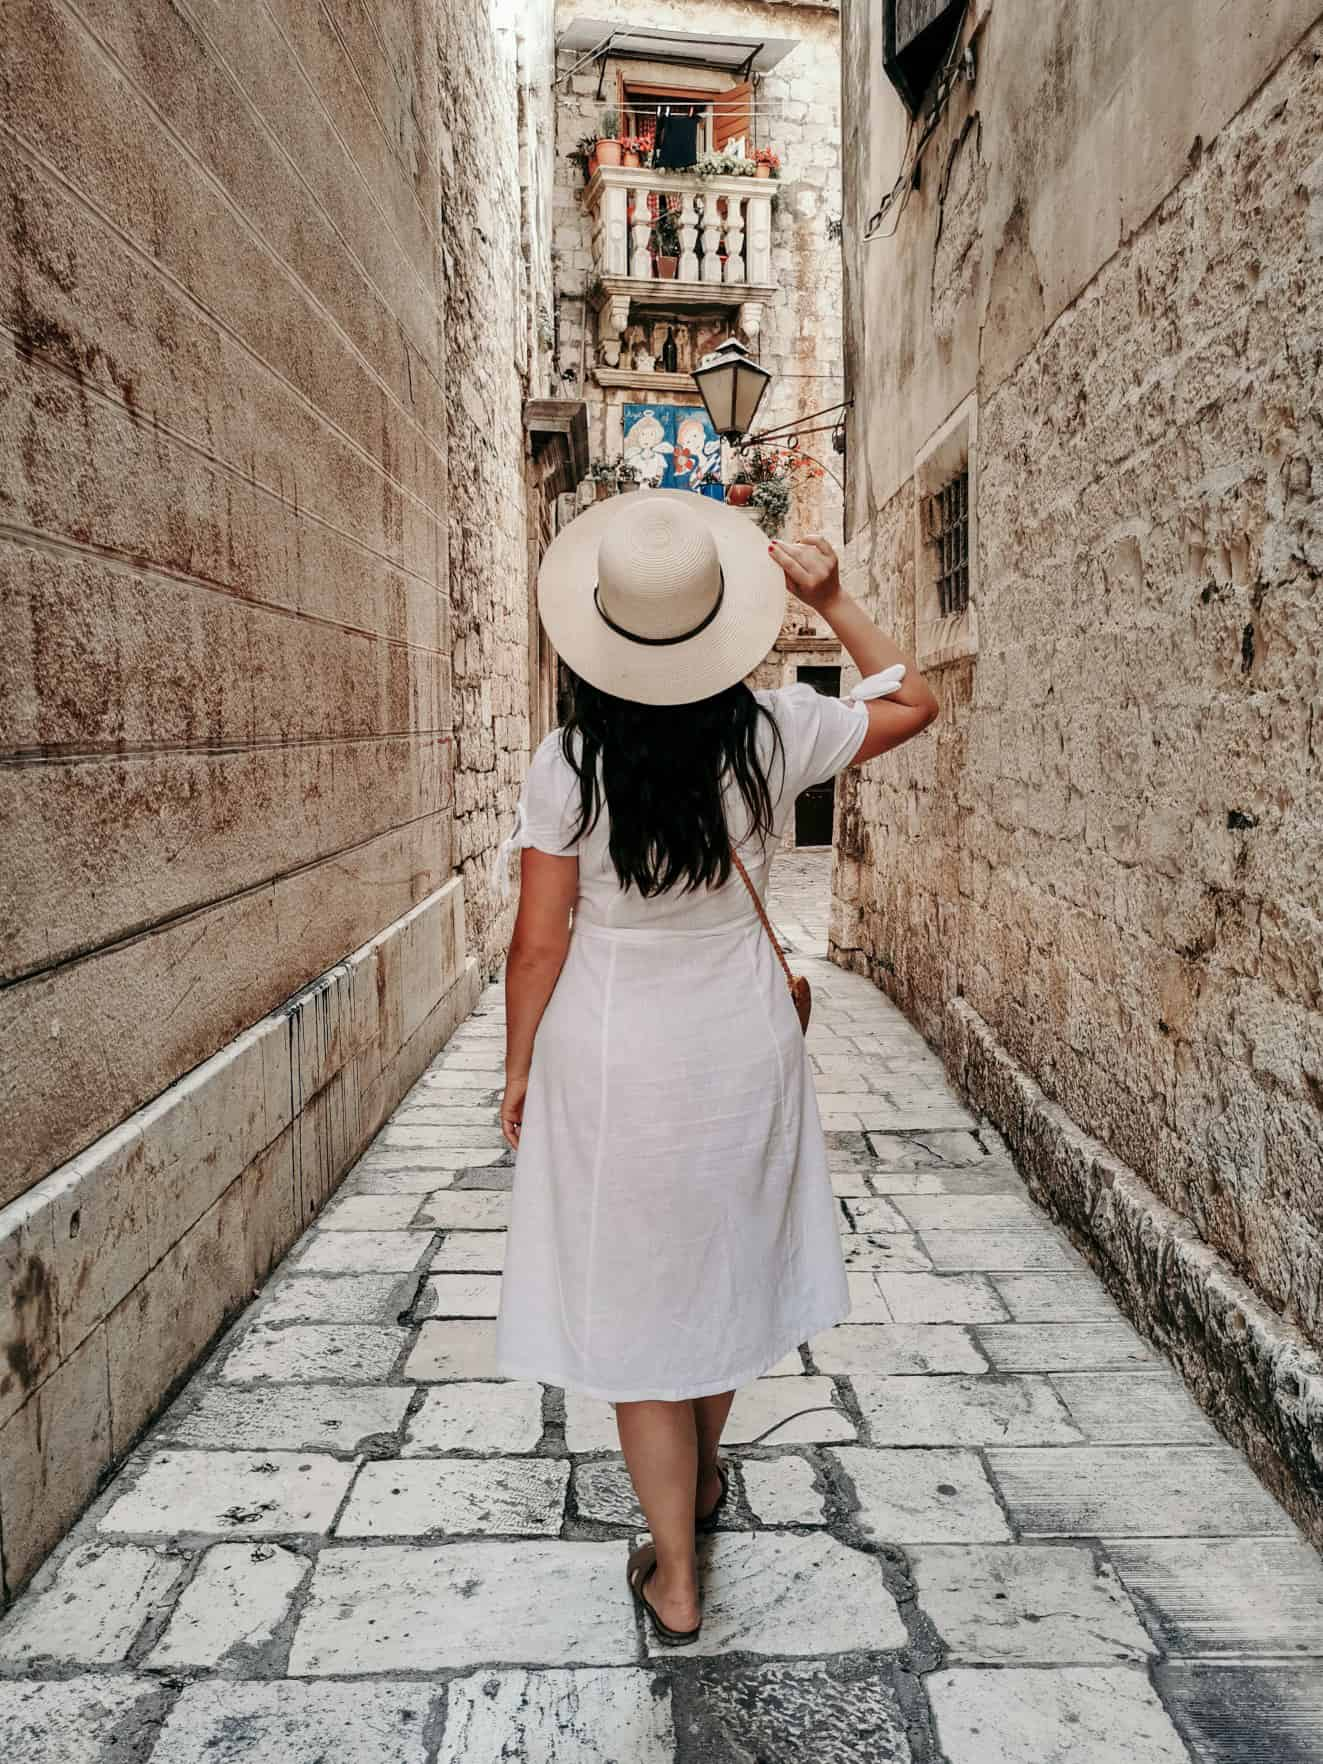 rear-view-of-stylish-young-woman-wearing-sun-hat-and-white-summer-style-dress-walking-on-stone-paved_t20_NlV9XN 2